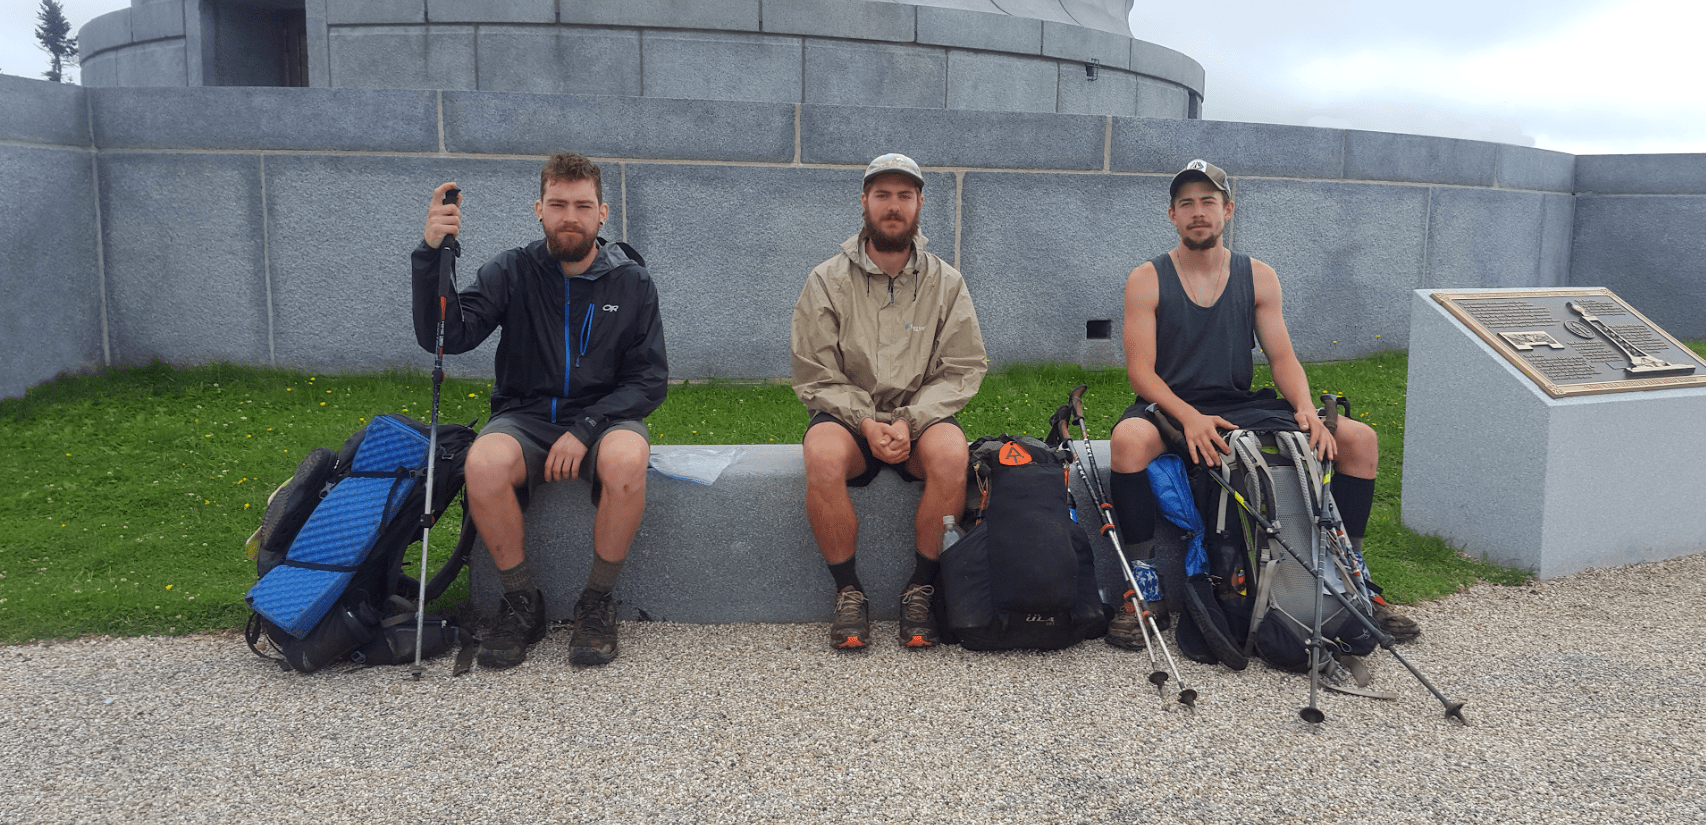 A group of guys hiking the Appalachian Trail sit on a bench with their backpacks.